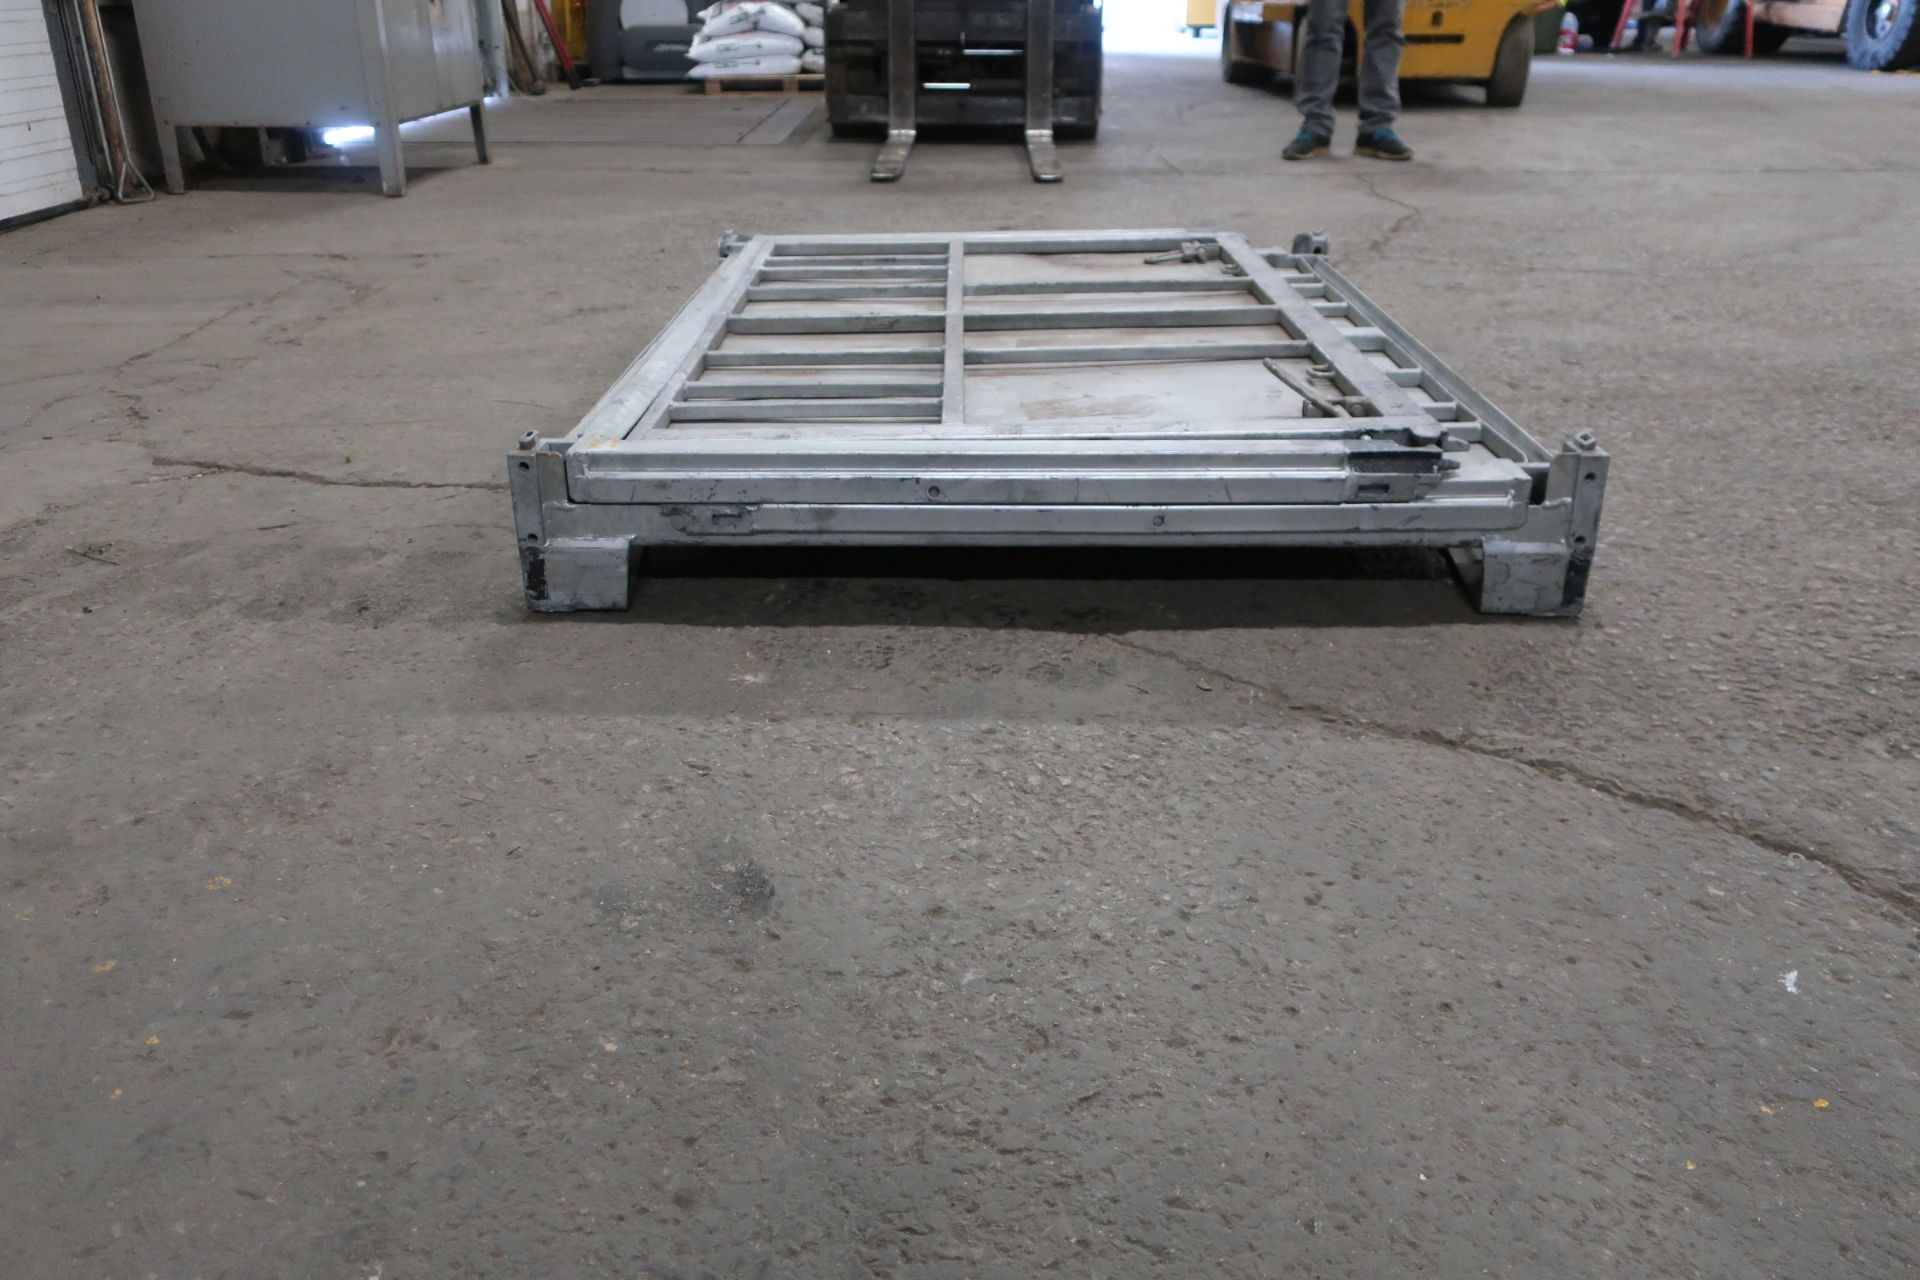 """Lot of 5 (5 Units) Steel Like New Folding Collapsable Bins - 58"""" x 45"""" x 43"""" tall (TIMES THE BID) - Image 3 of 4"""